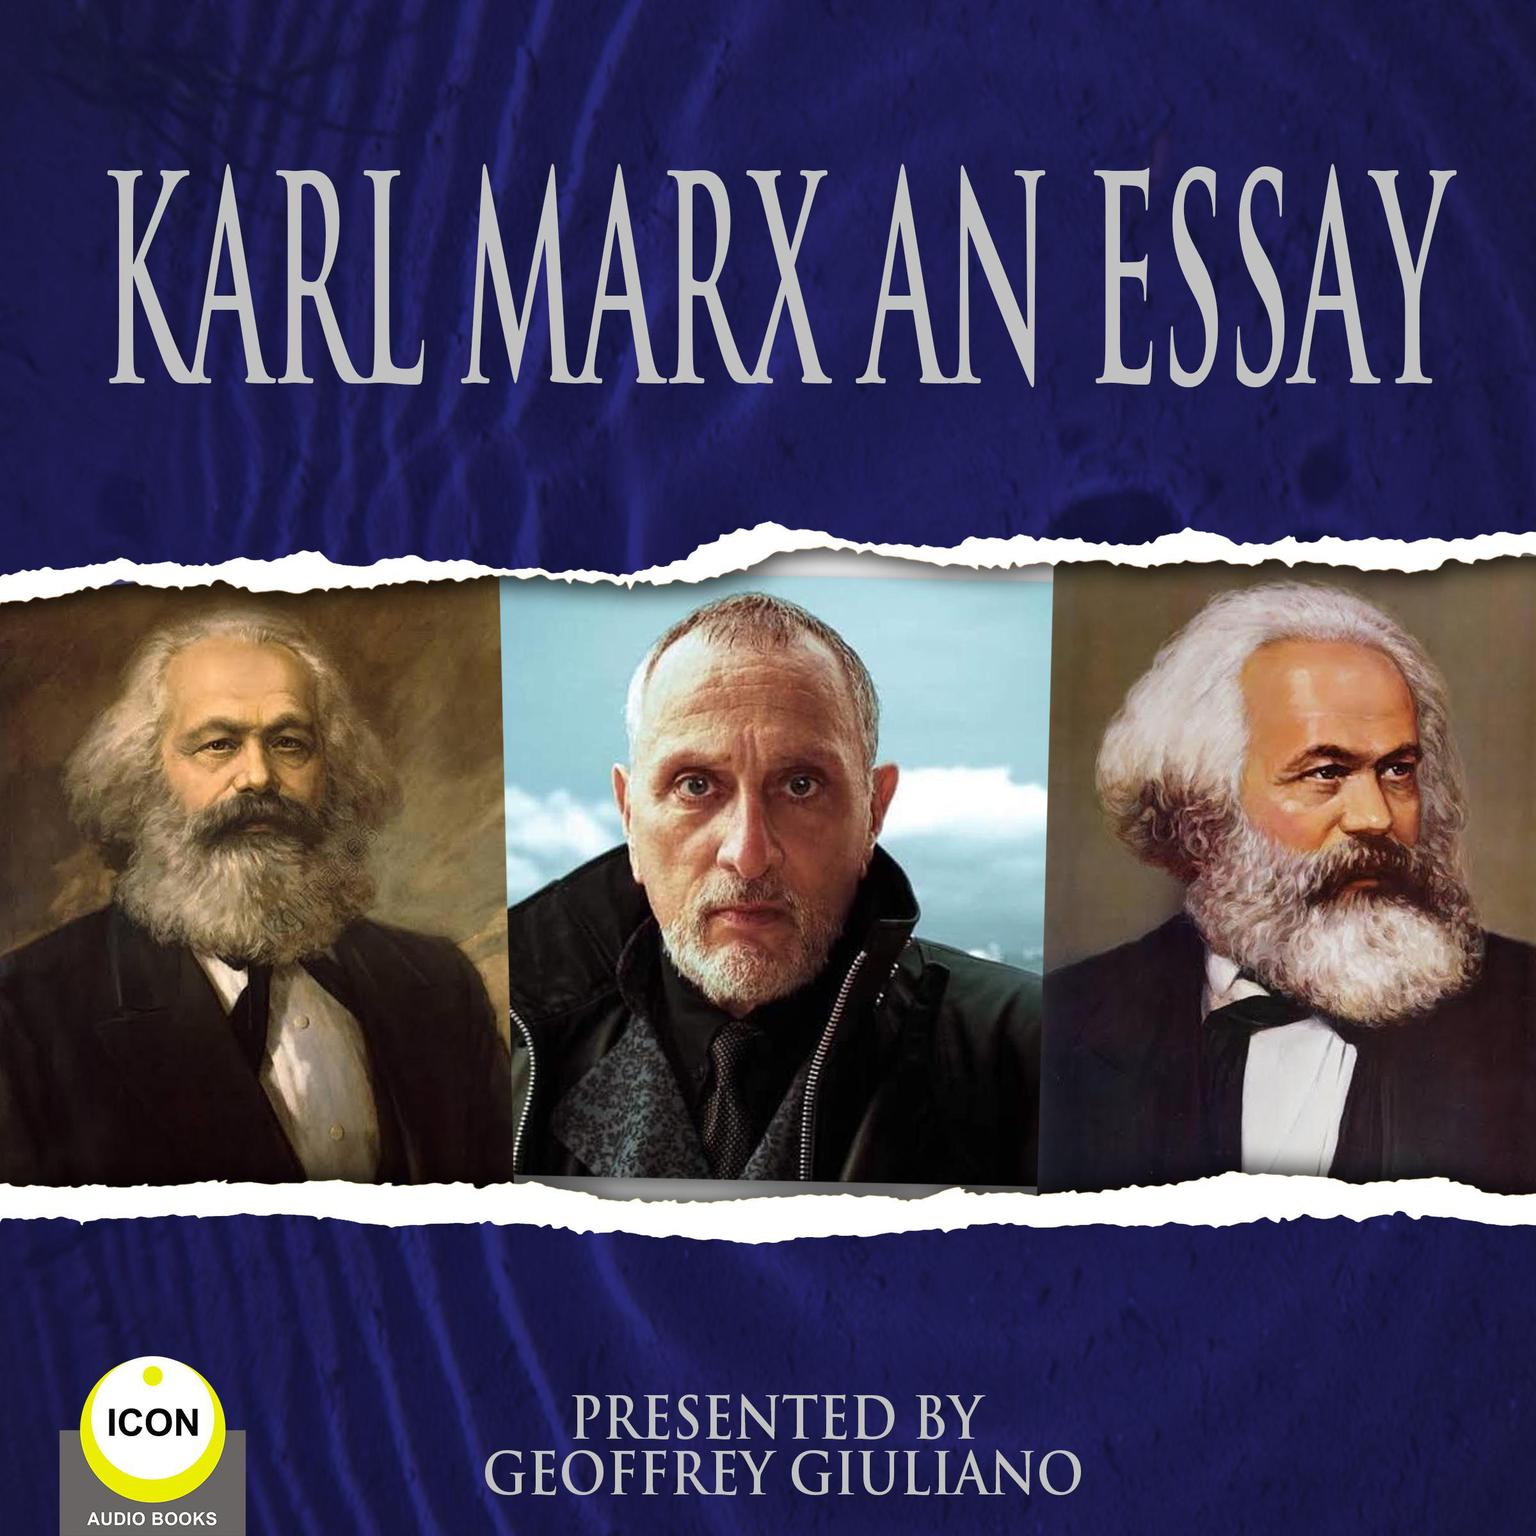 Printable Karl Marx An Essay Audiobook Cover Art